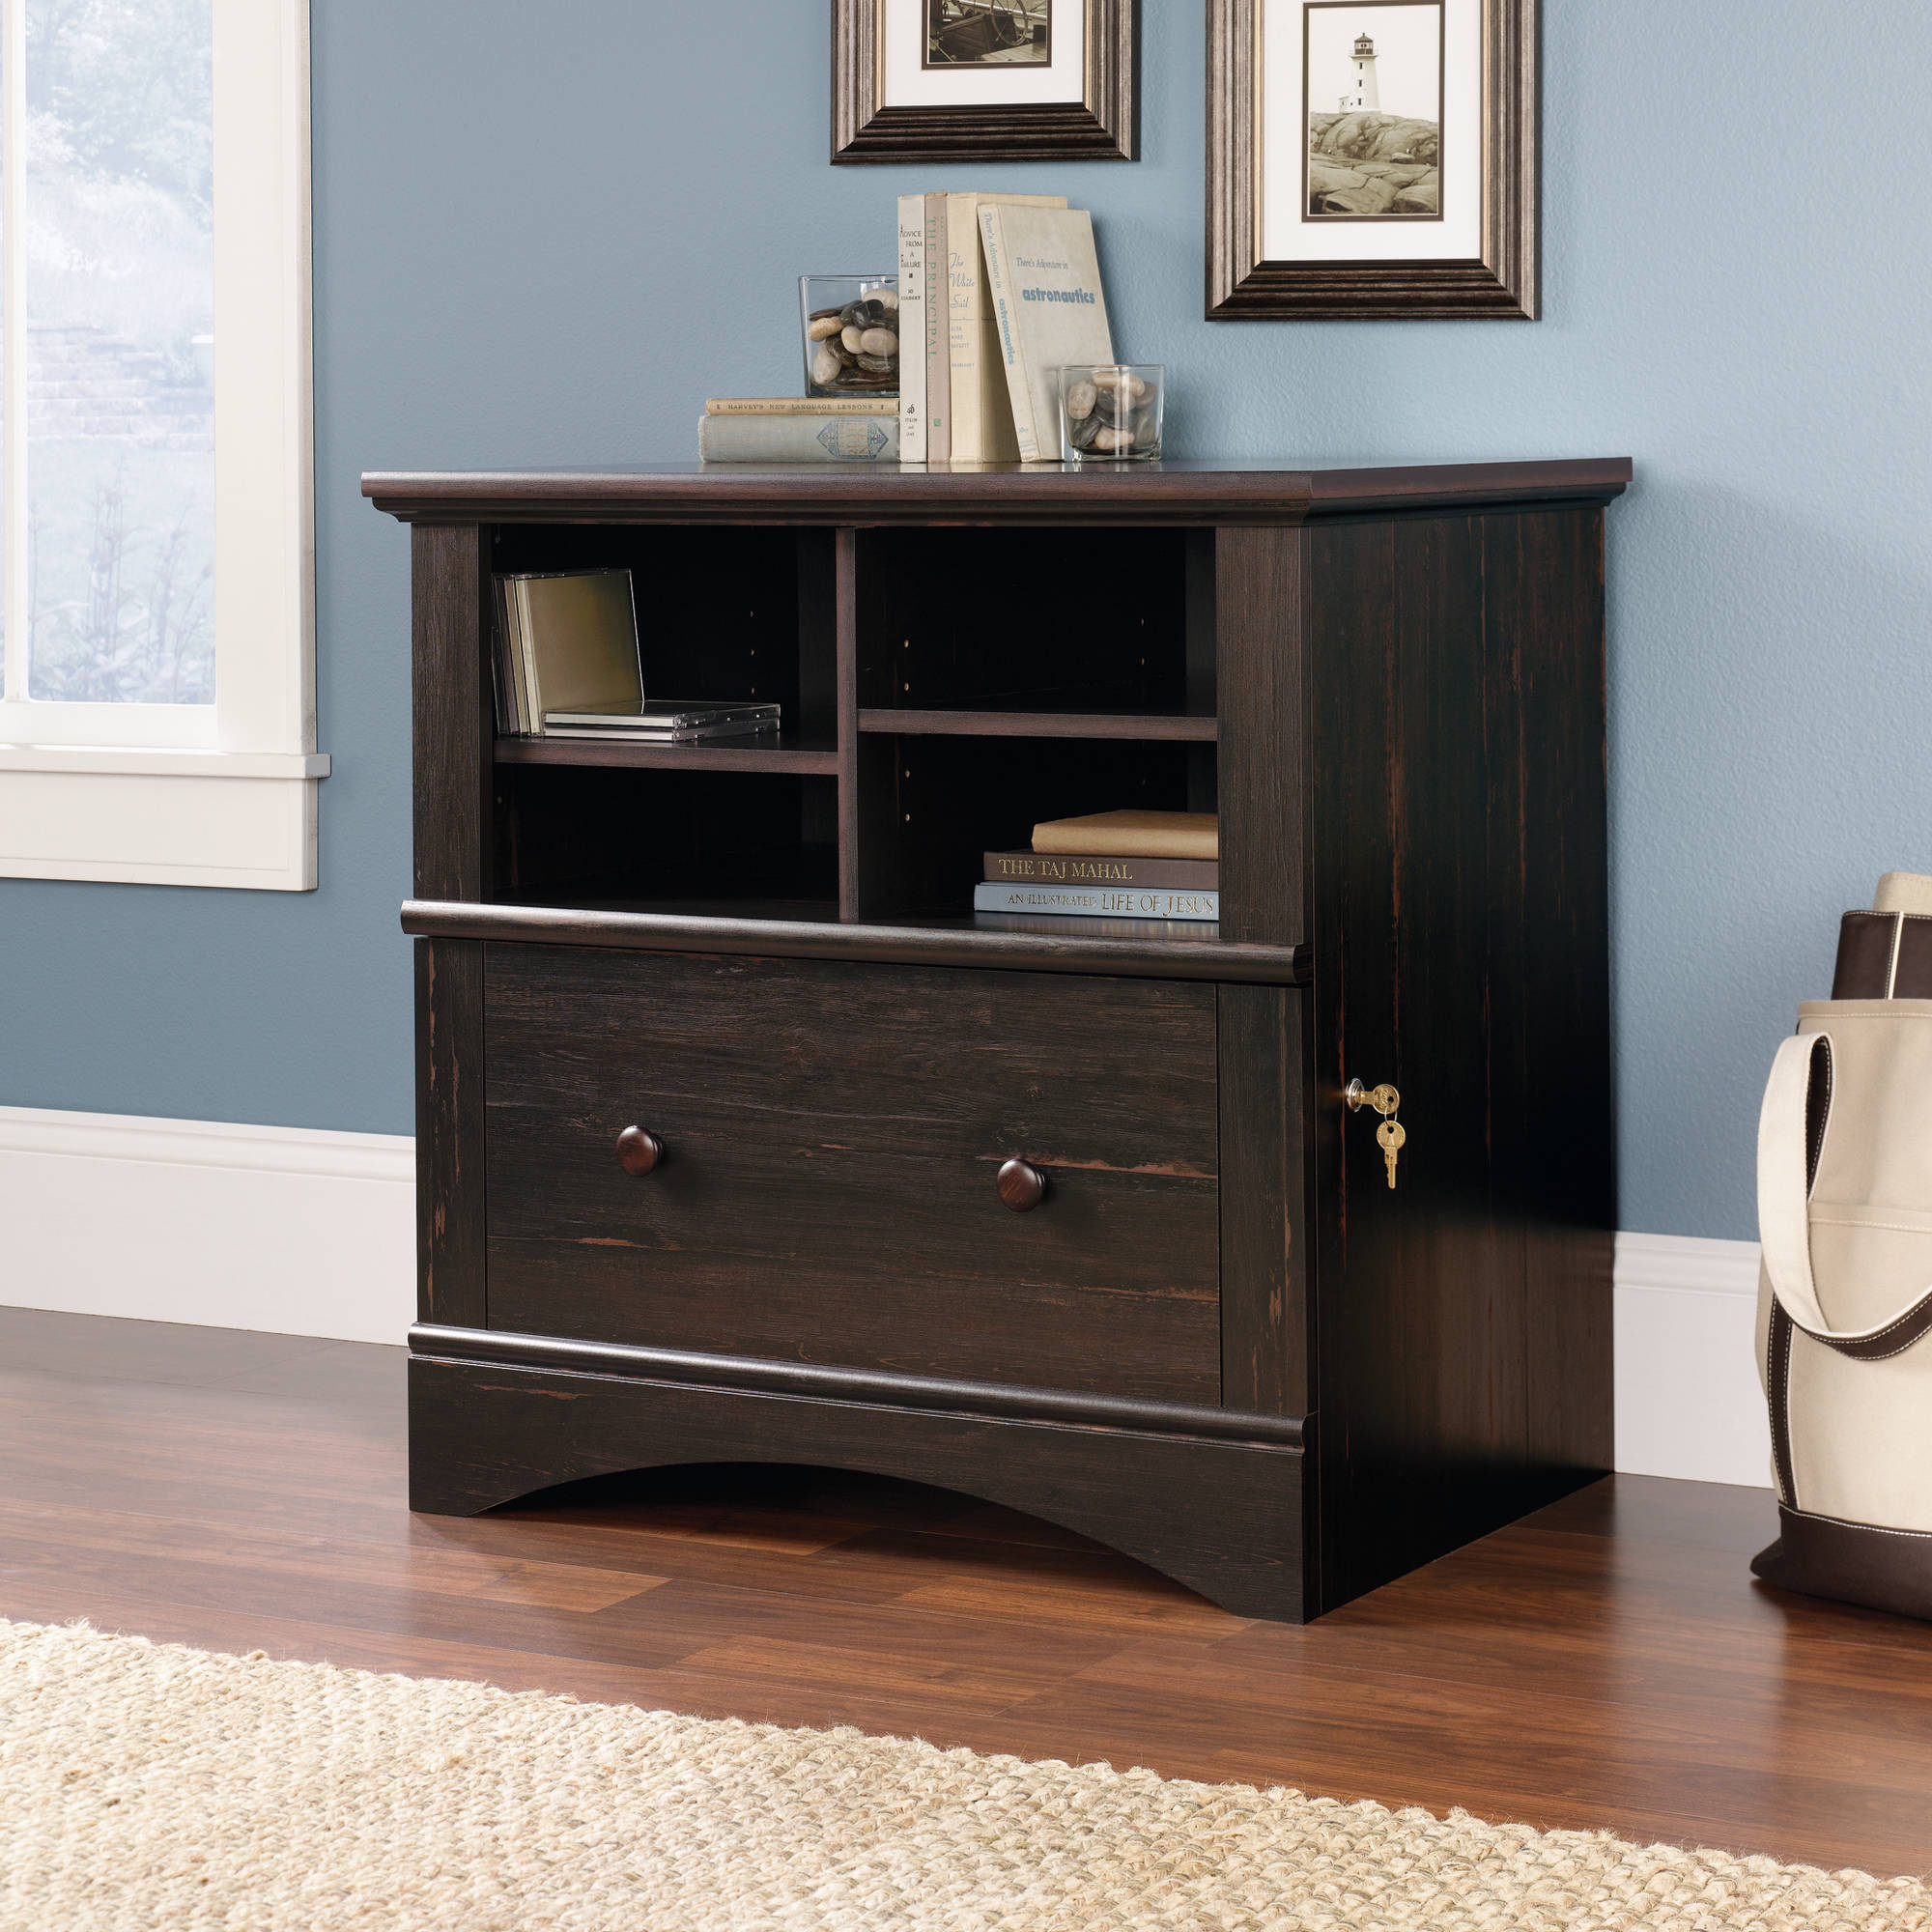 Sauder Harbor View Lateral File Cabinet, Antiqued Paint